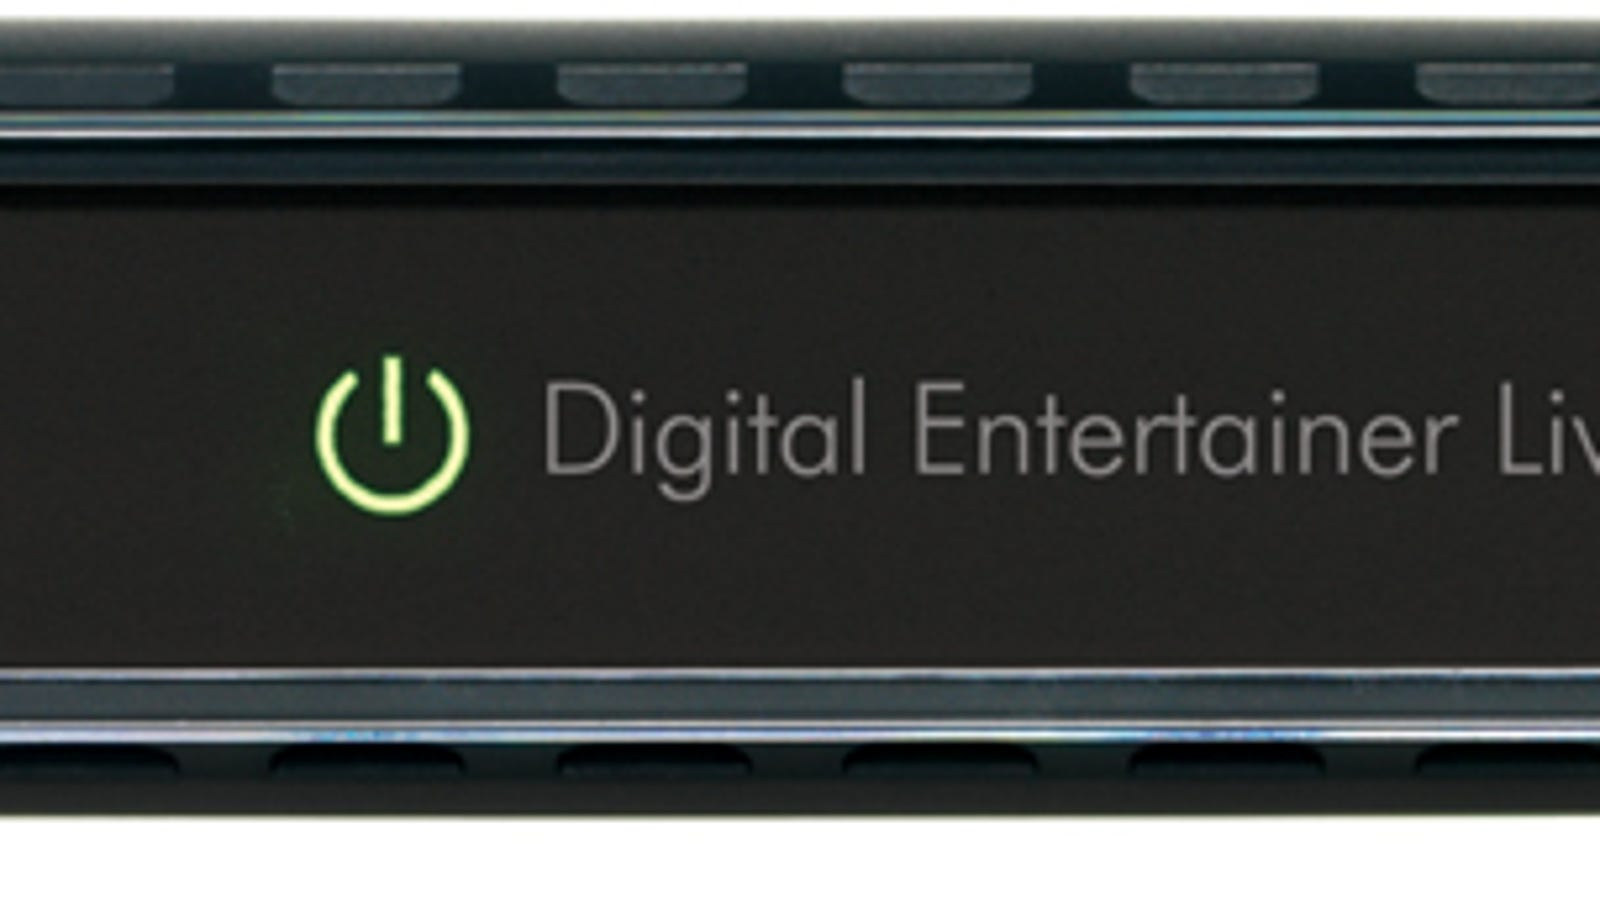 Netgear Digital Entertainer Live Streams Pc Media To The Television Already Purchased A Usb Ethernet Converter Plug Into